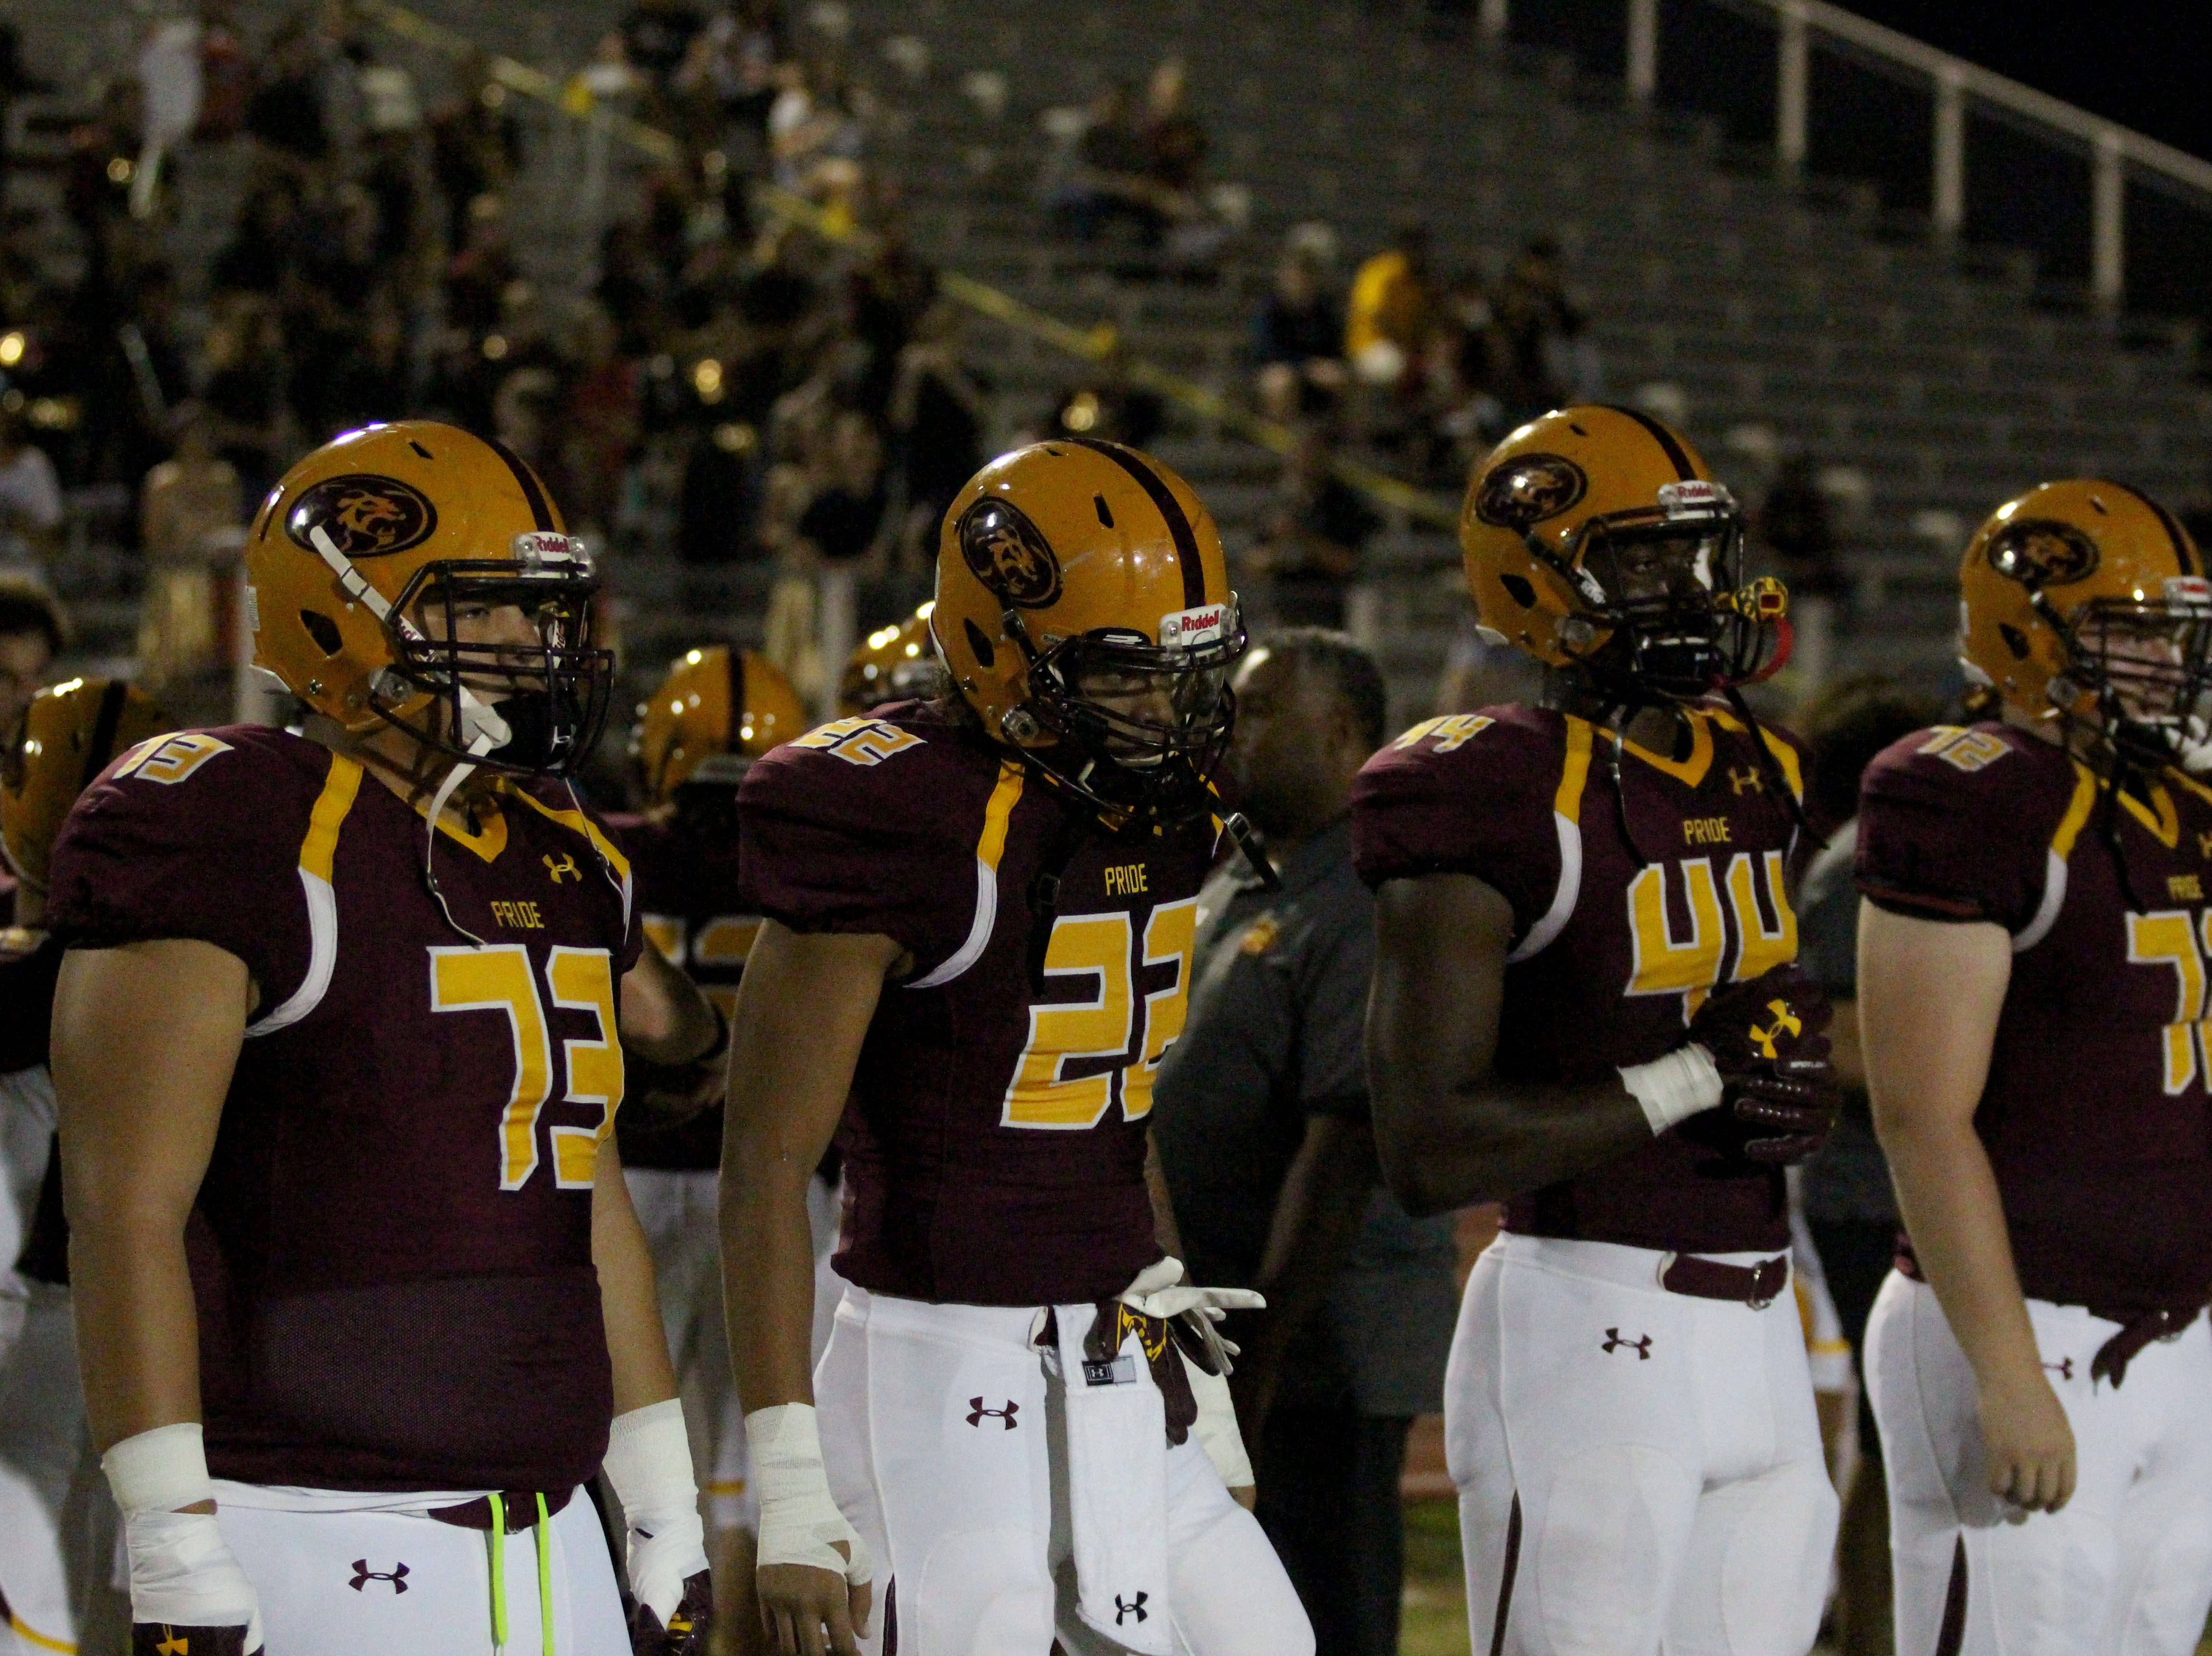 Mountain Pointe captains walk to the middle of the field before the team's game against Queen Creek on Friday night at Mountain Pointe High School on Sept. 21, 2018.